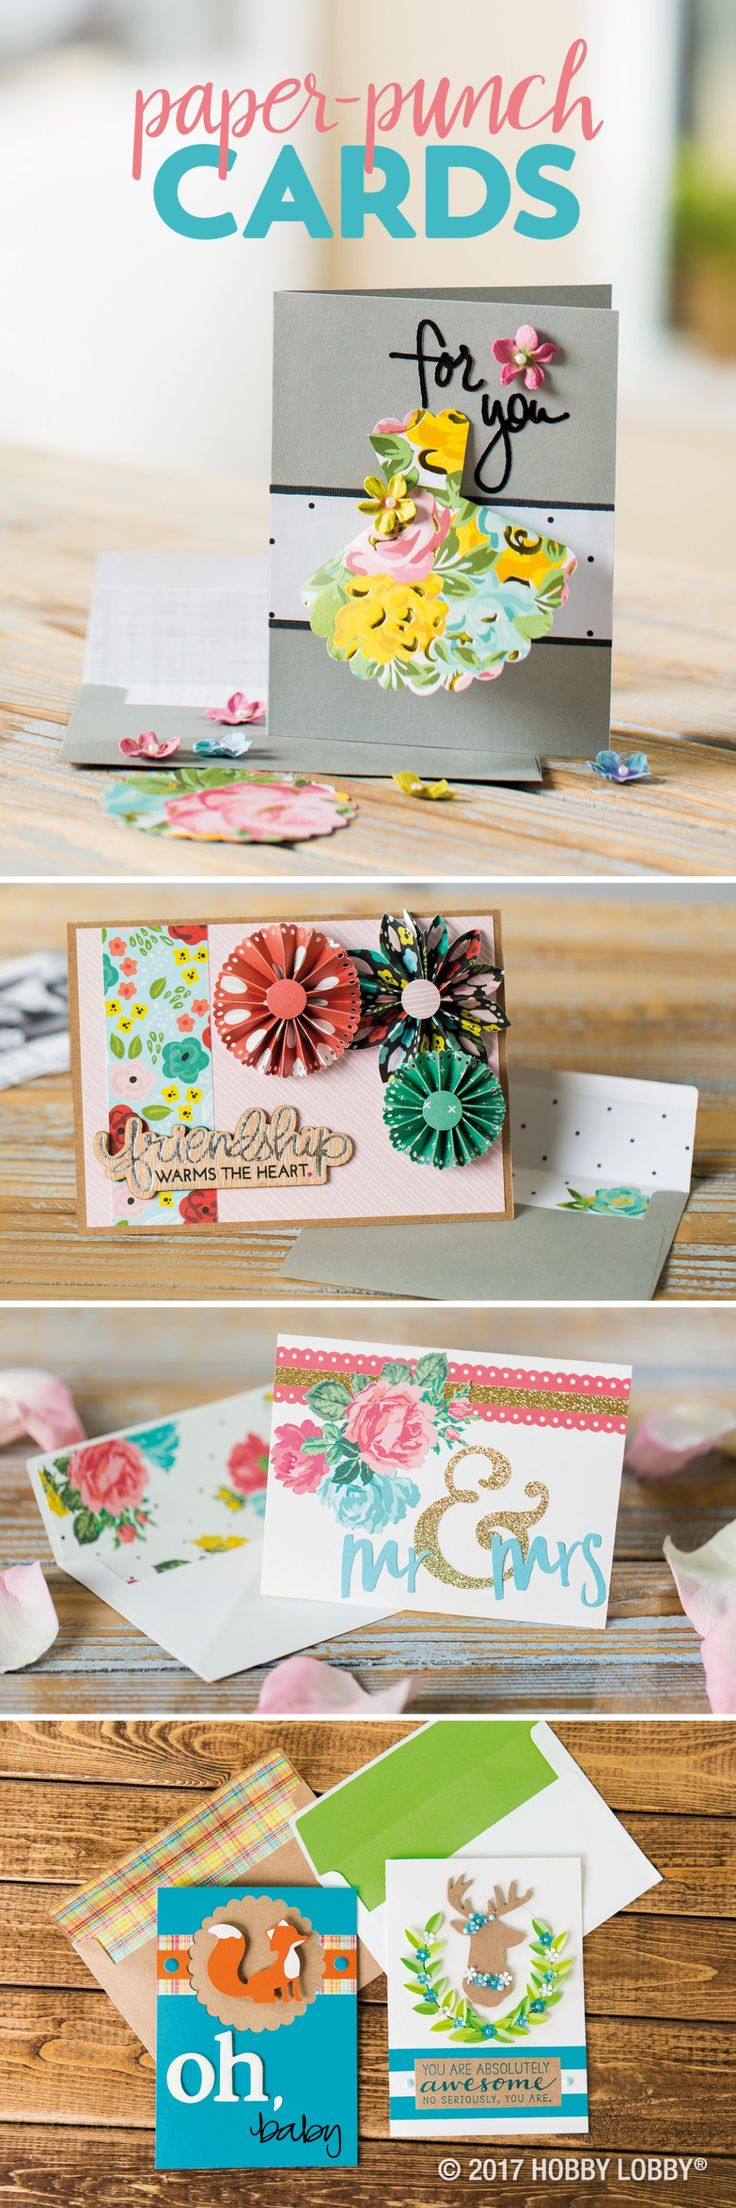 342 best papercrafting projects images on pinterest for Pre punched paper for crafts